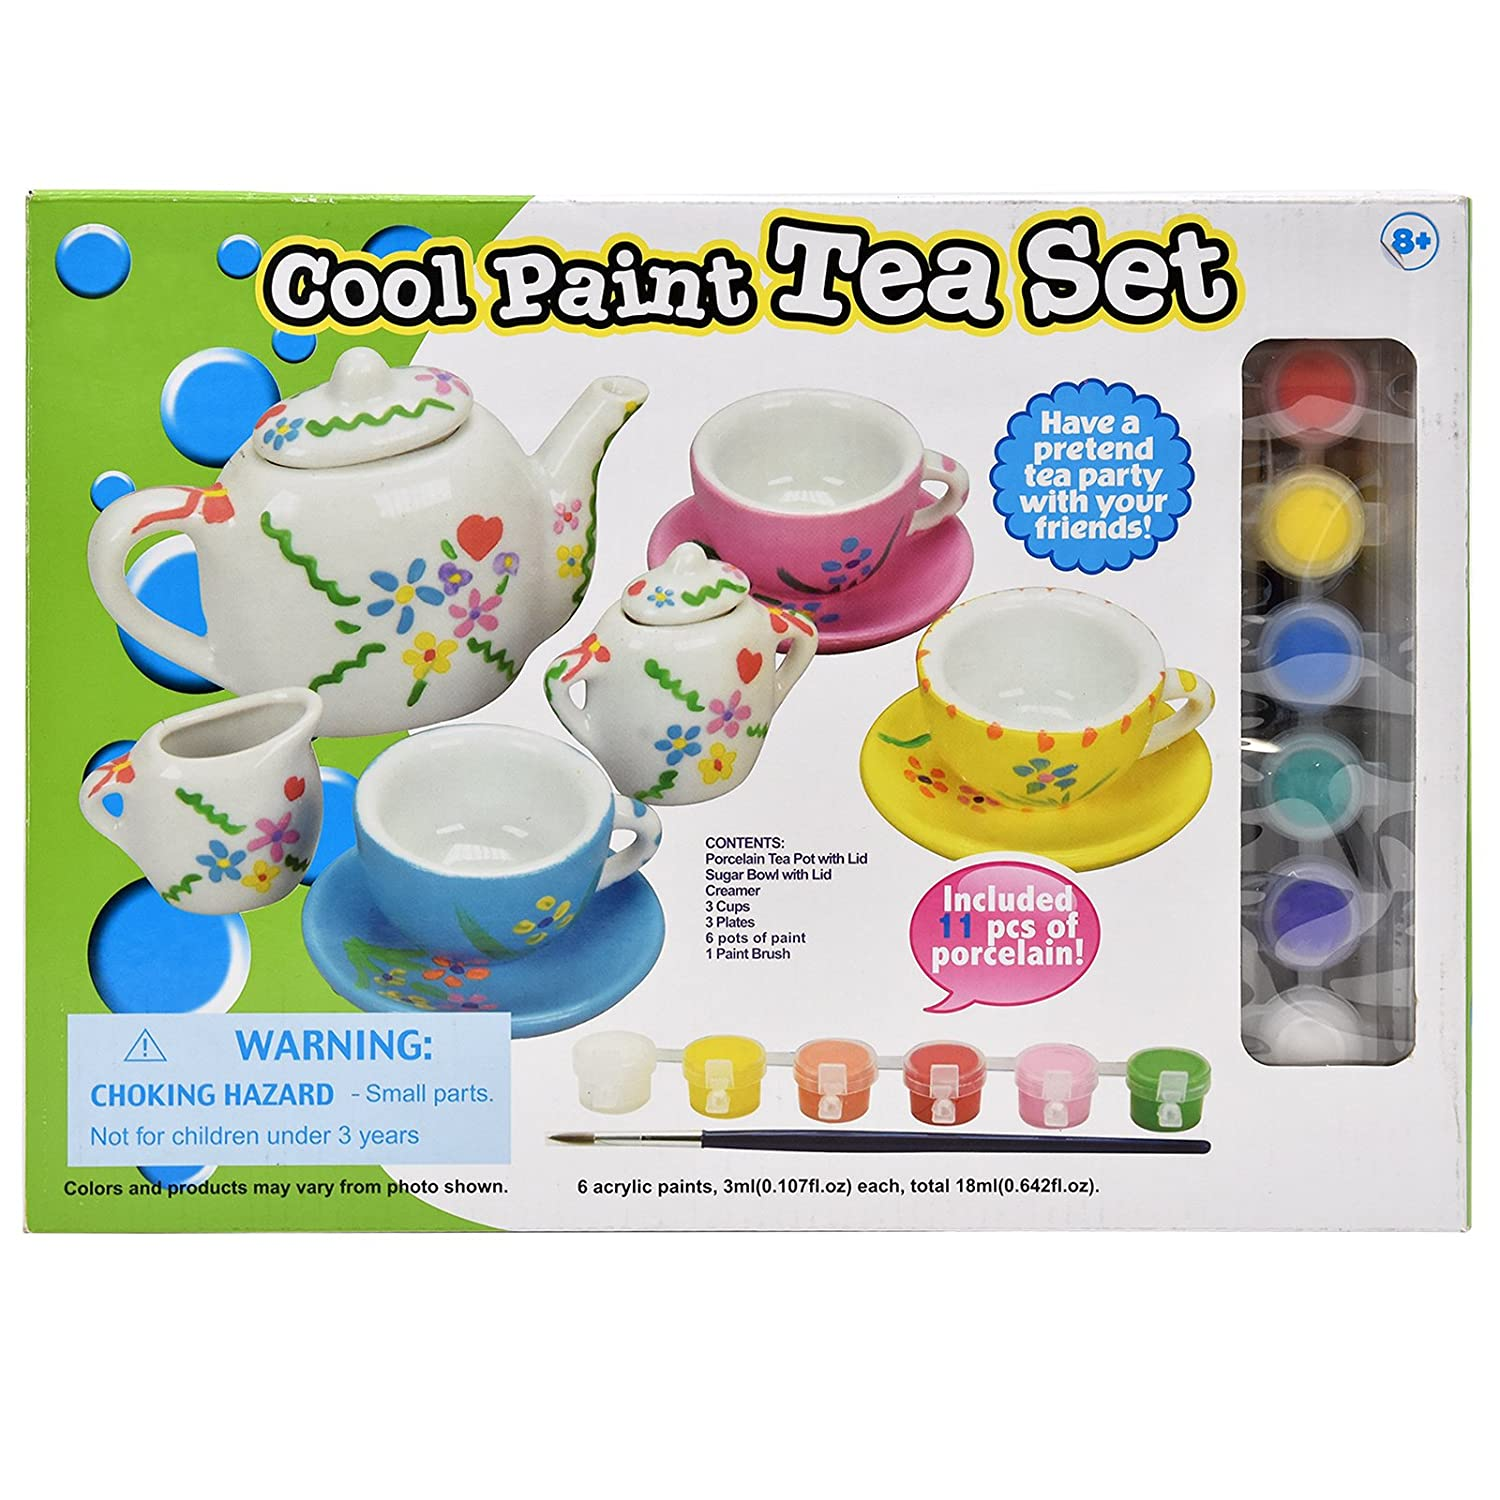 Number 1 in Gadgets Paint Your Own Tea Set, Decorate Your Own 11 Piece Set of Porcelain Dishes, Includes Six Paint Pots and Paint Brush